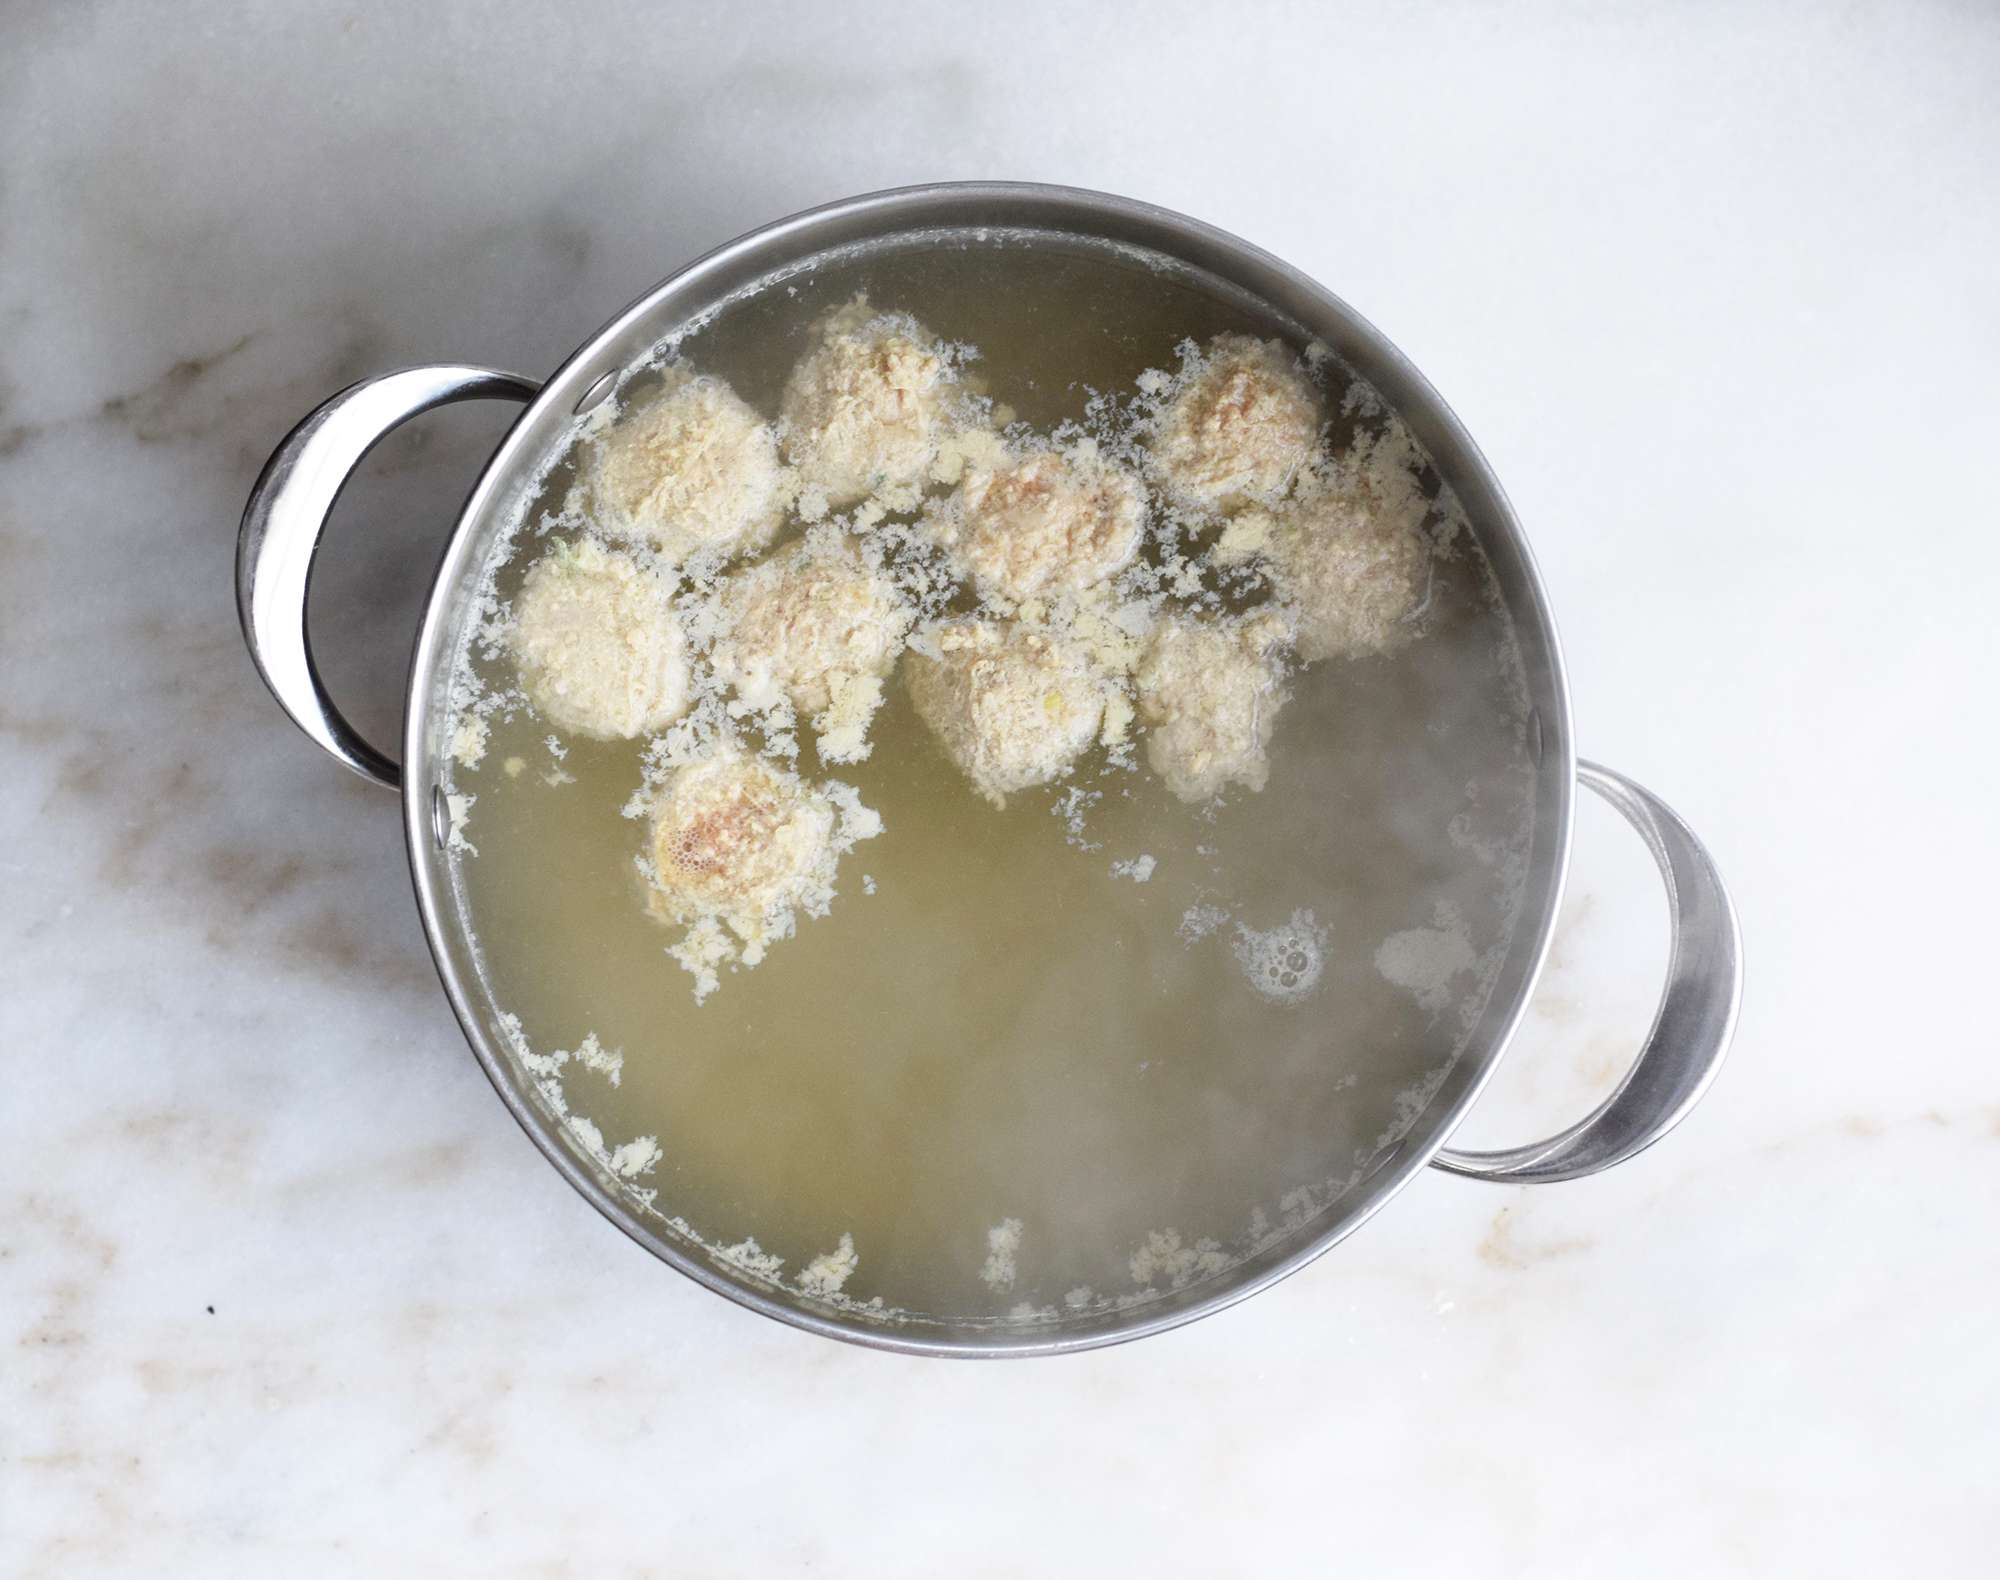 cooking meatballs in boiling water